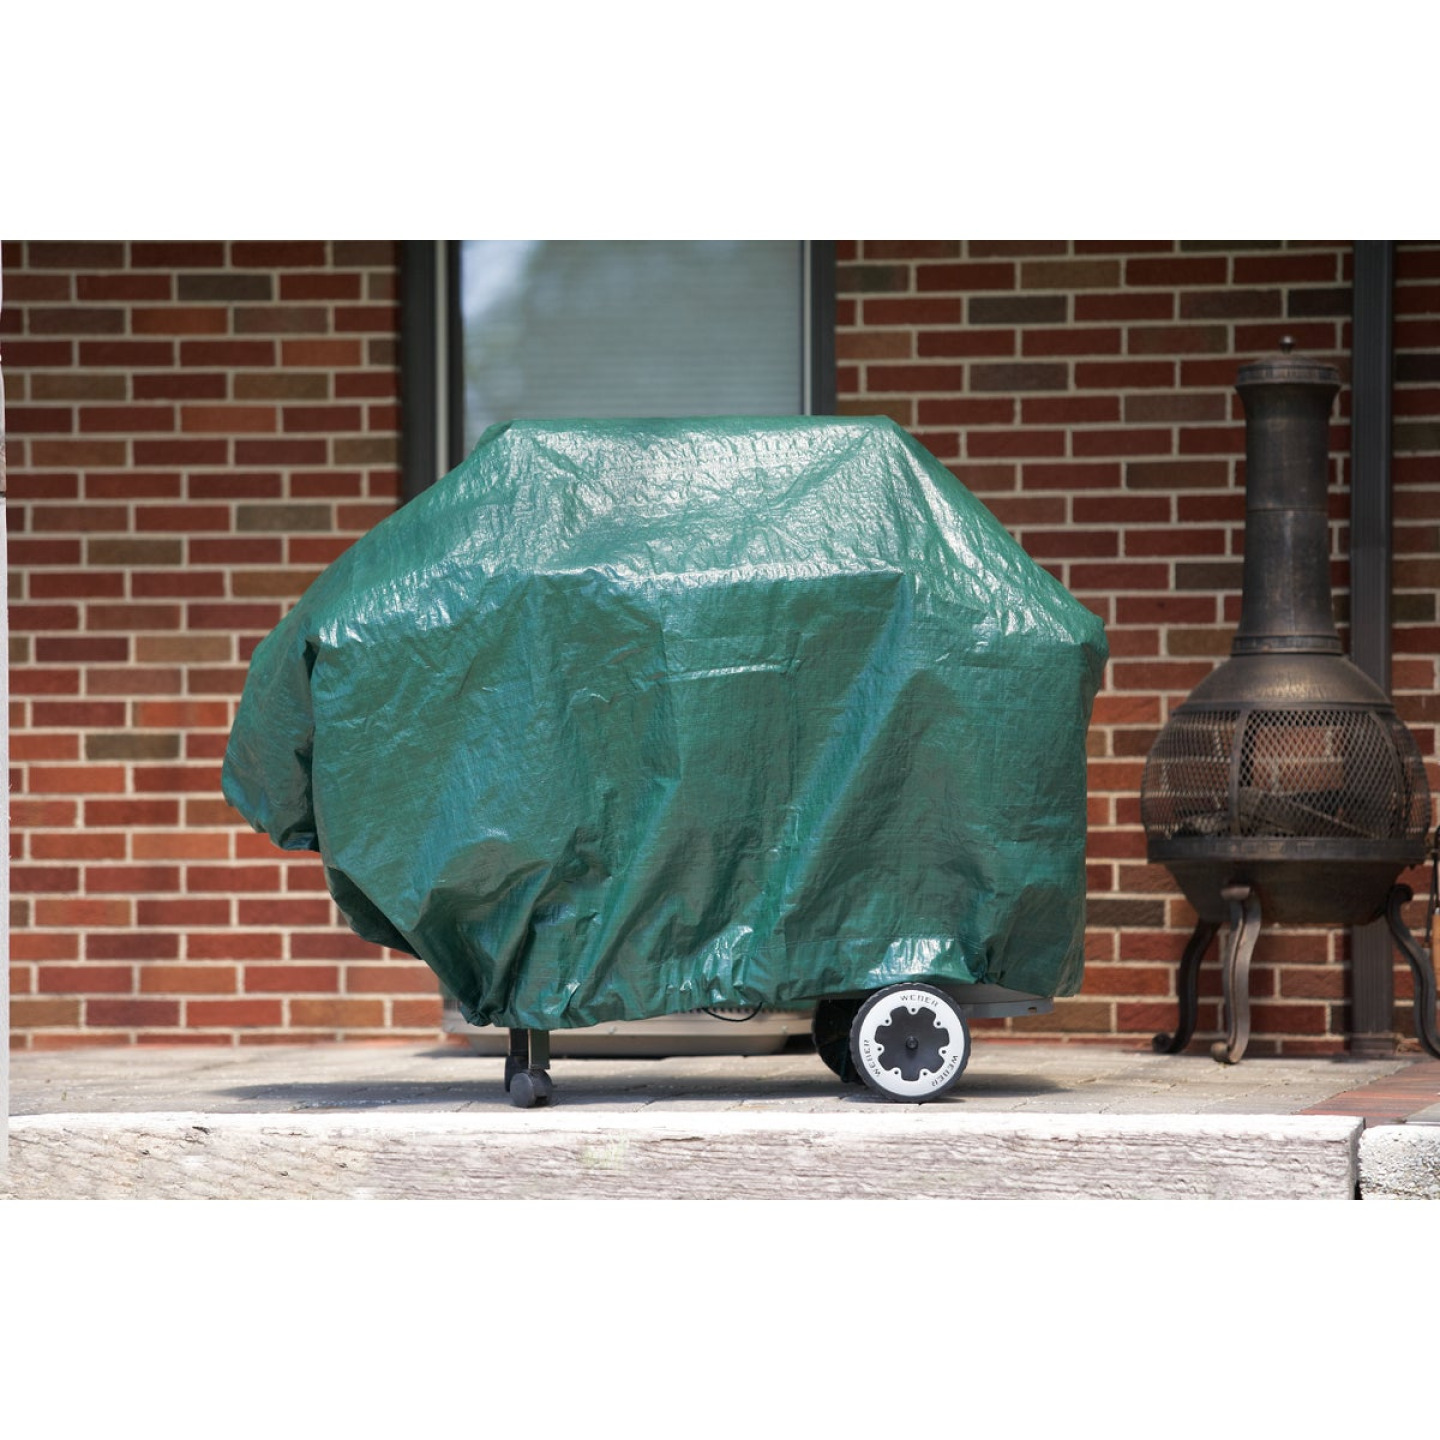 Do it Best 9 Ft. x 9 Ft. Poly Fabric Green Lawn Cleanup Tarp Image 3